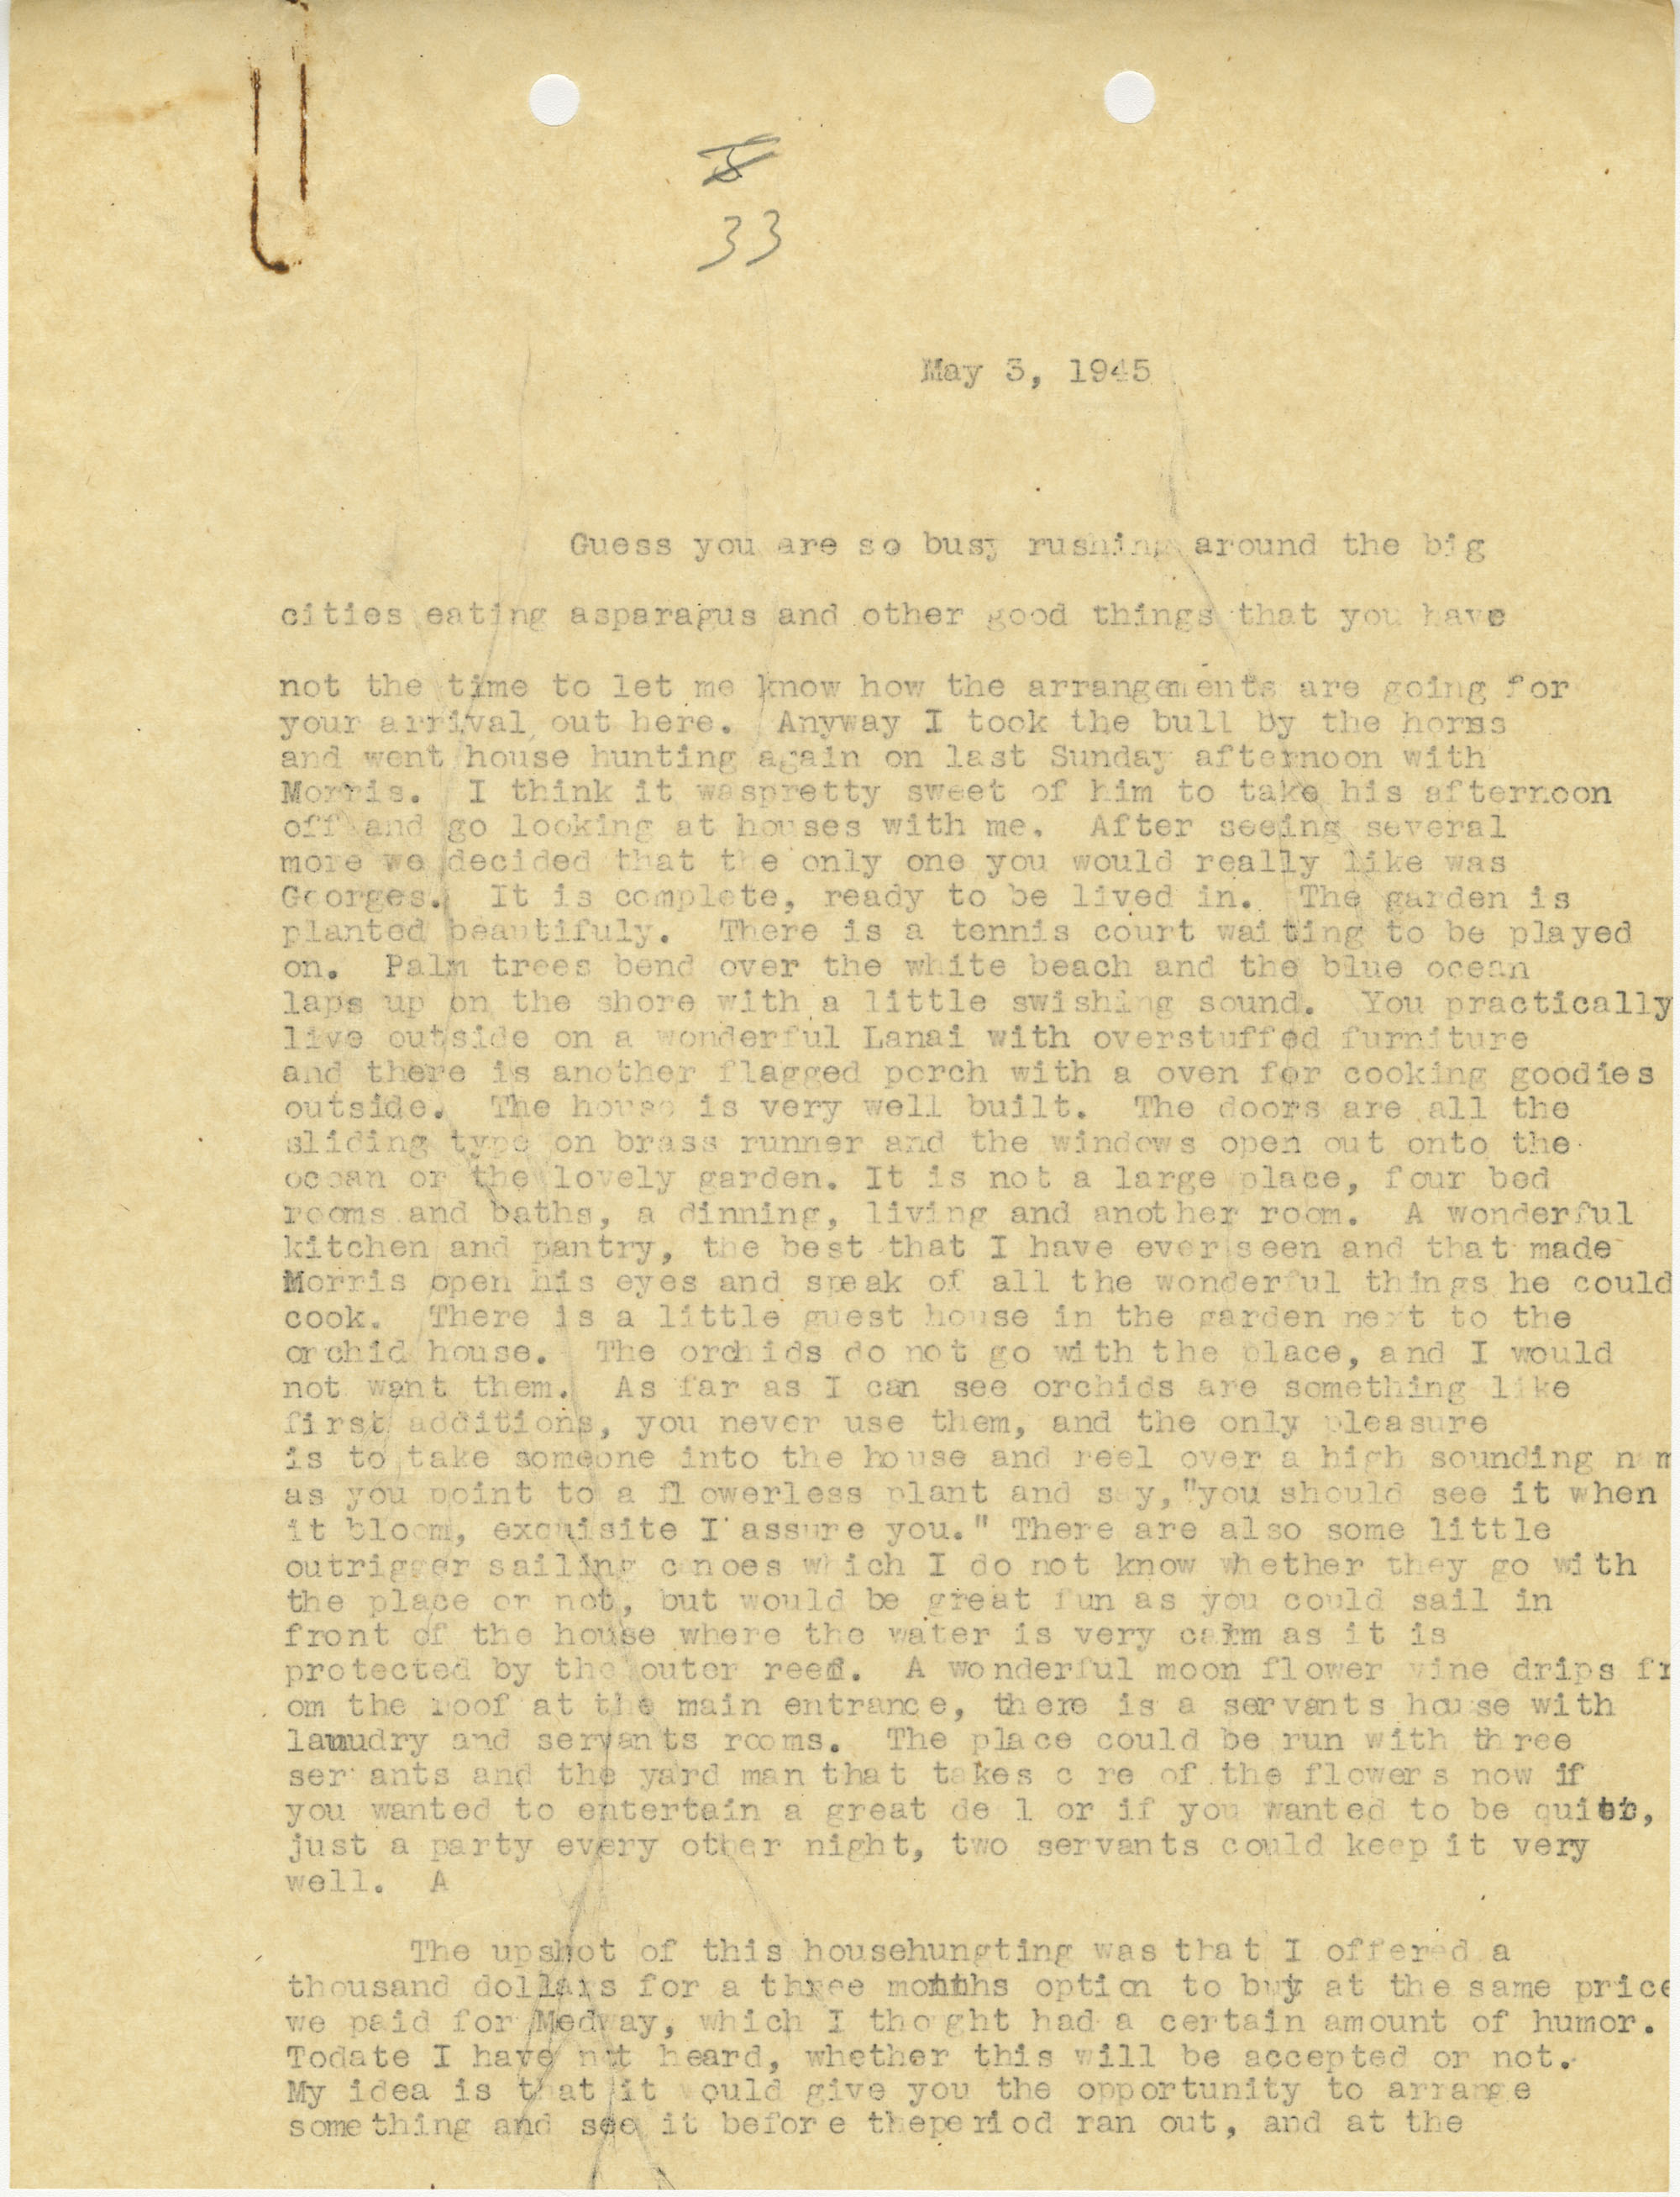 Letter from Sidney Jennings Legendre, May 3, 1945